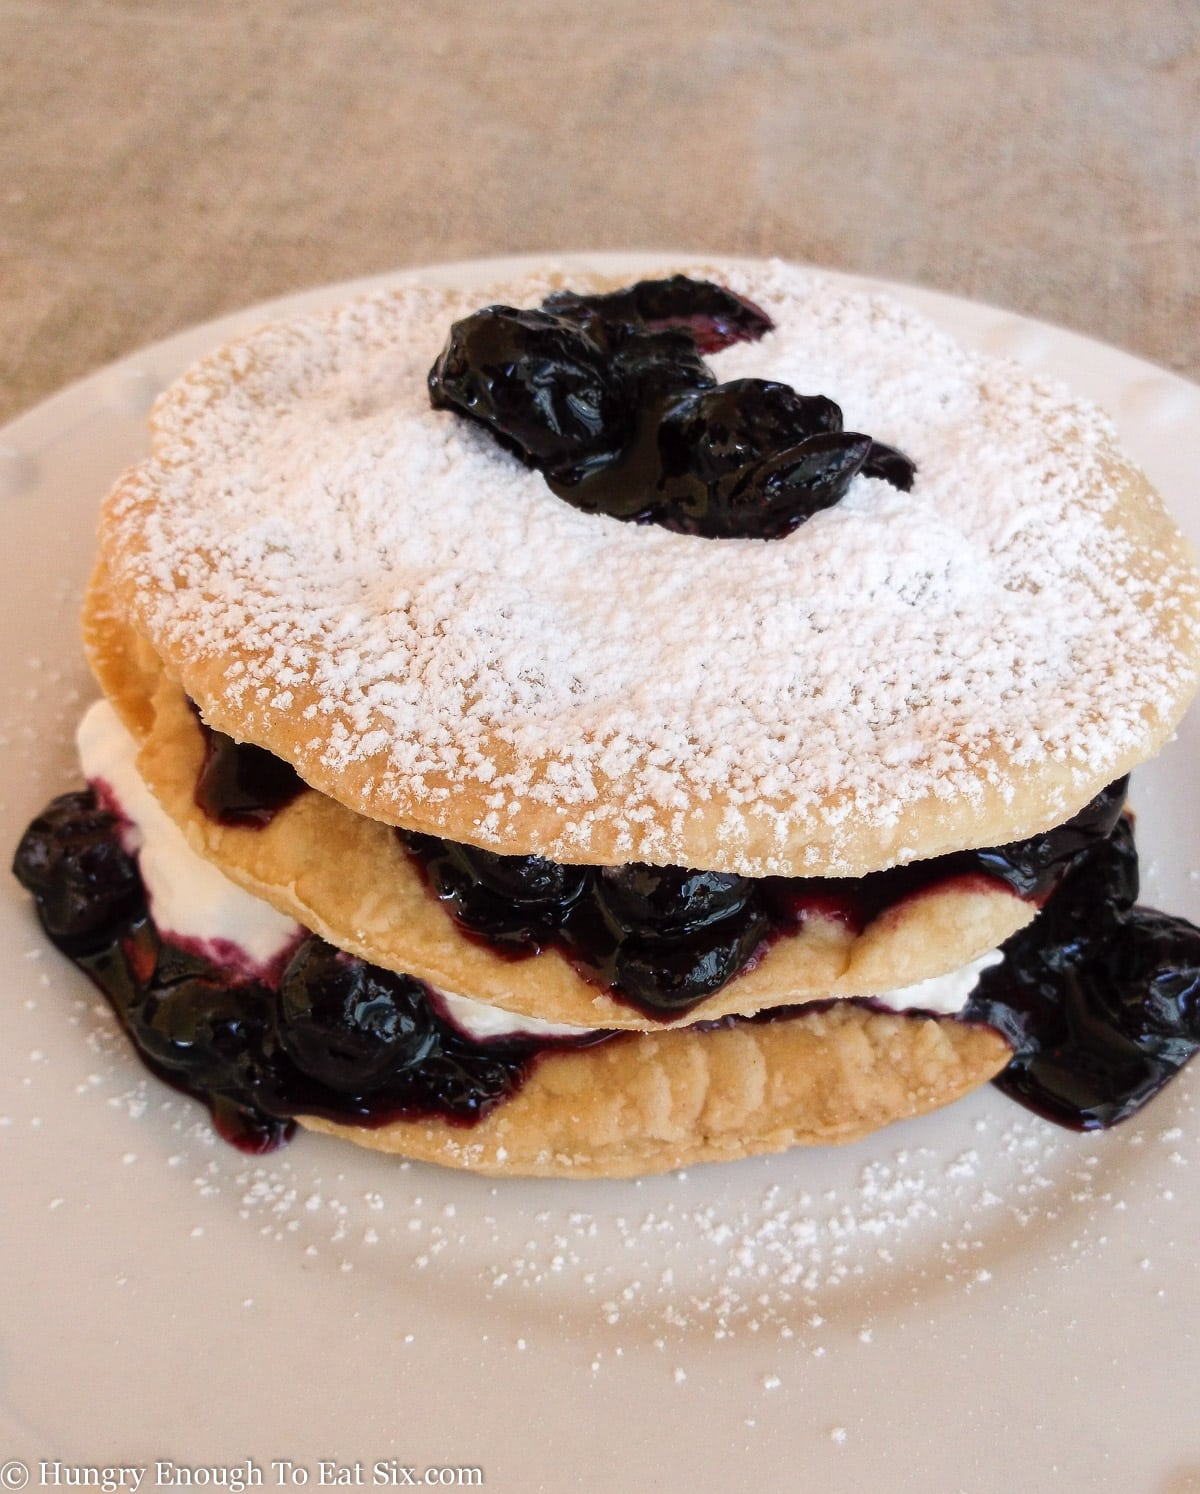 White plate with pastry fruit and cream